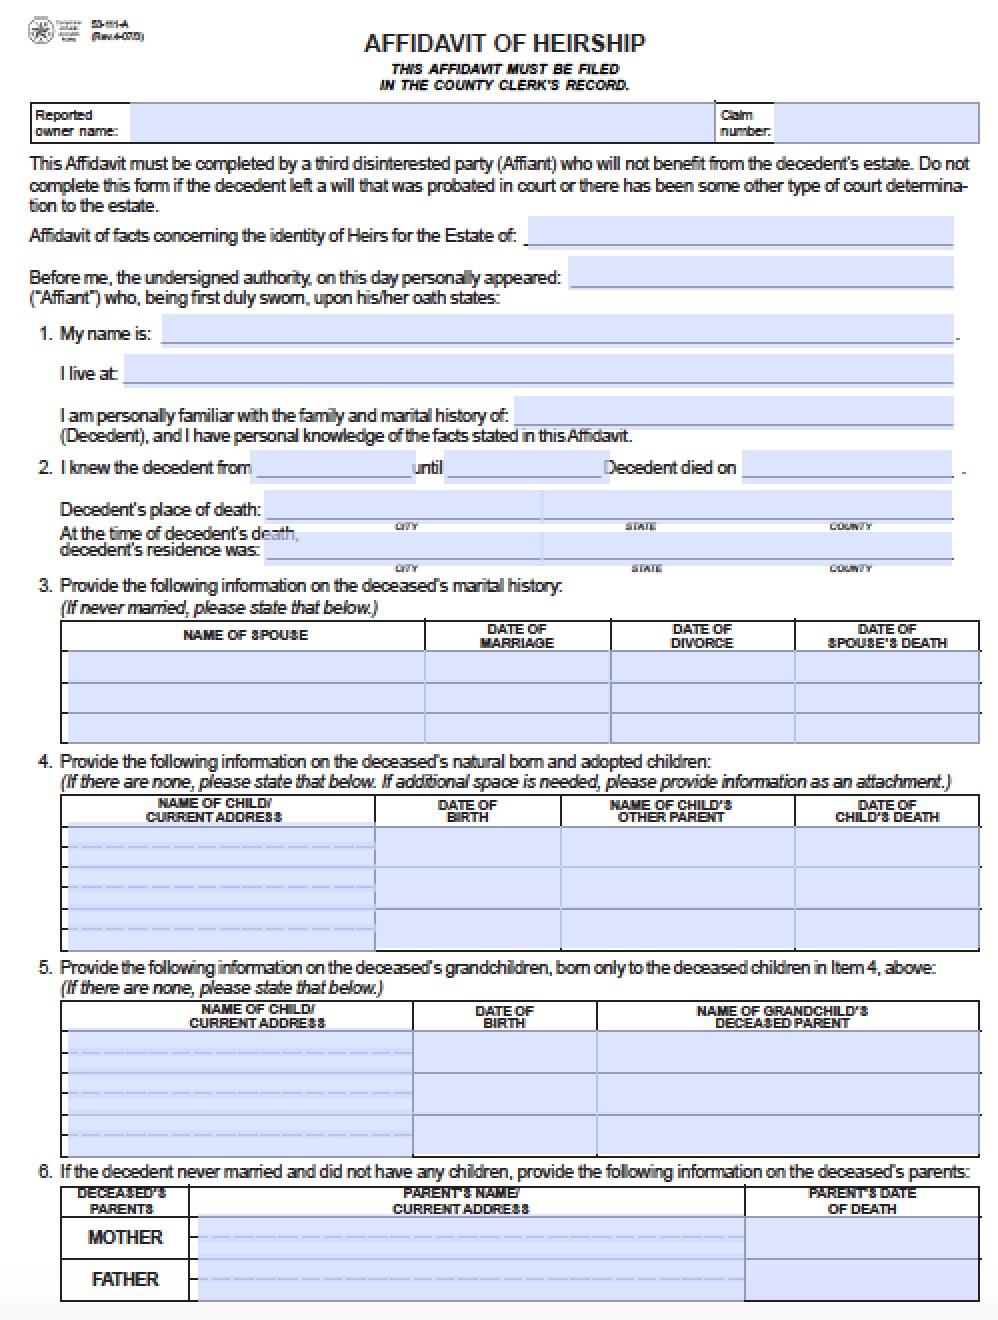 Free Texas Affidavit of Heirship | 53-111-a Form | PDF - Word